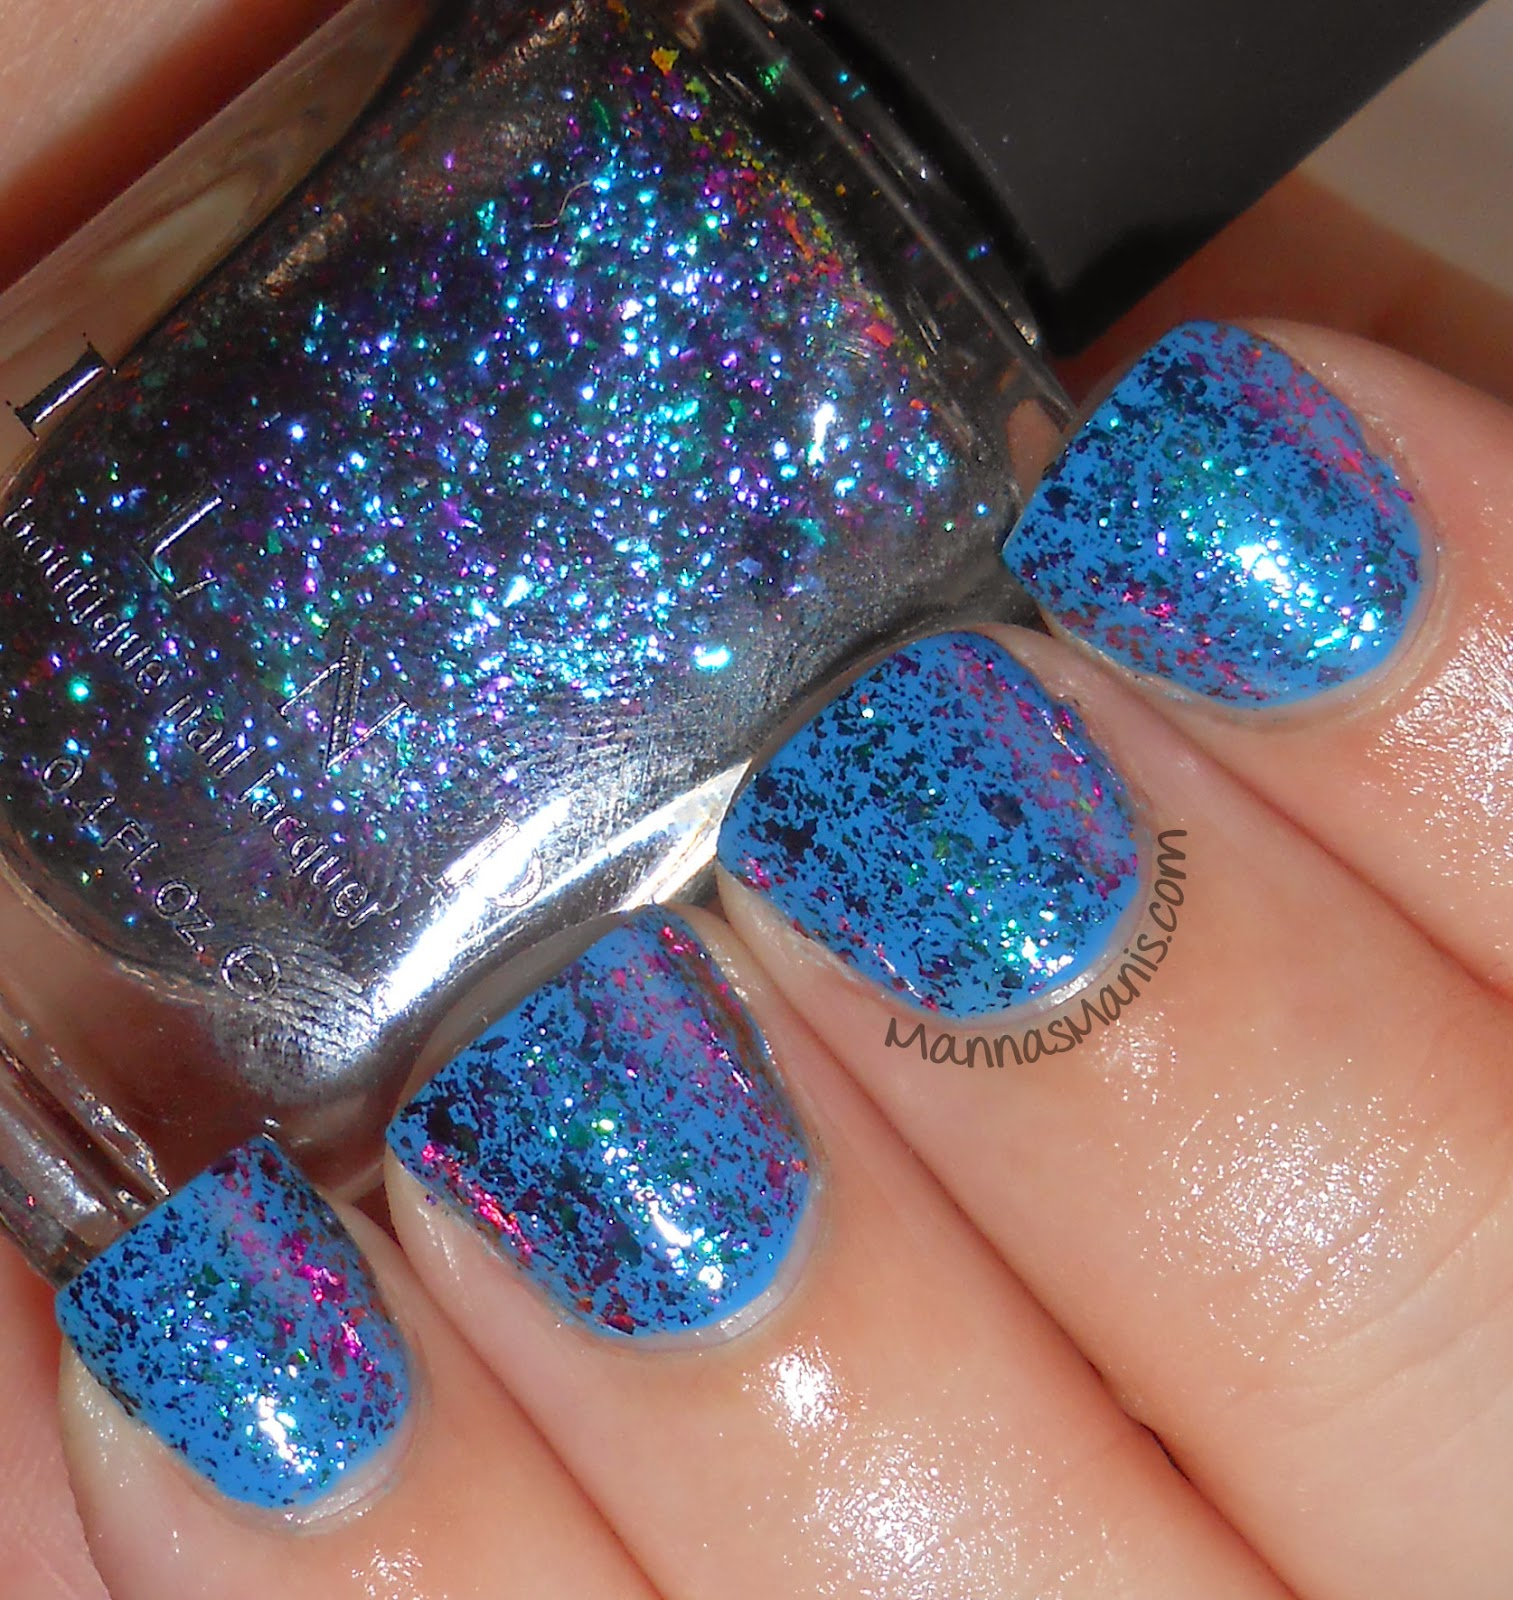 ILNP Luna, a multicolored flakie nail polish